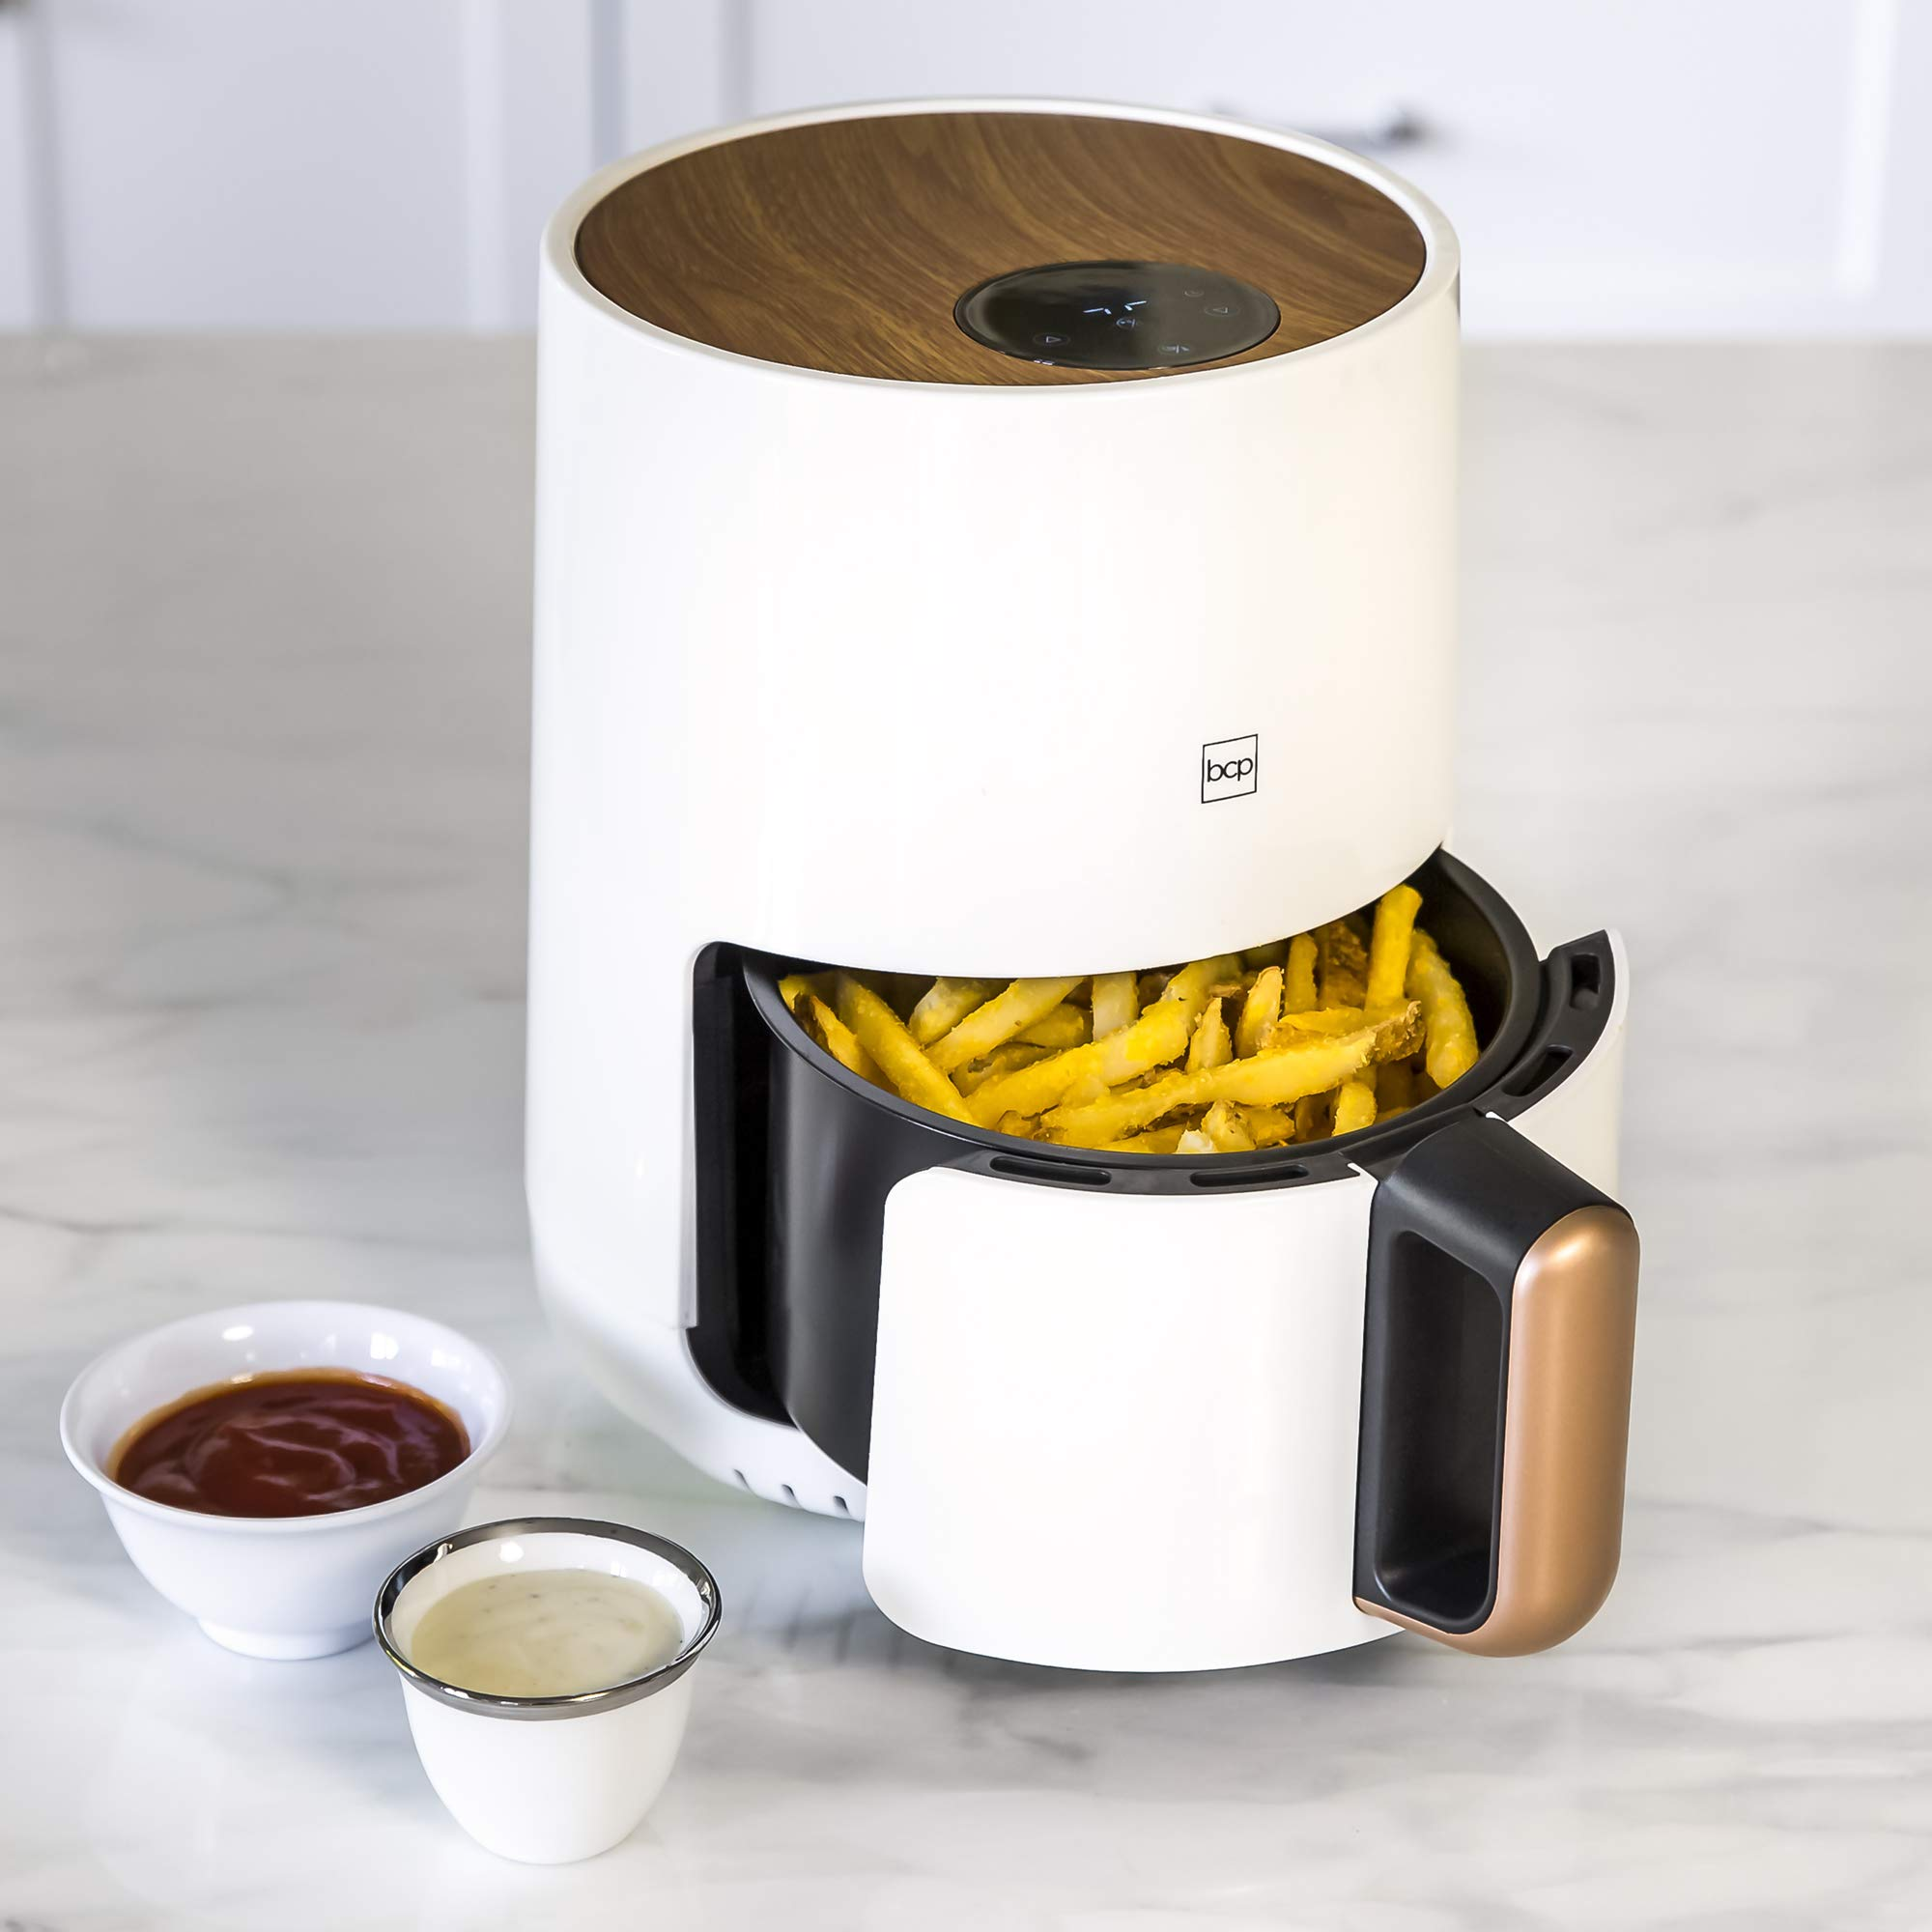 Best Choice Products 1.6qt 900W Digital Compact Air Fryer Kitchen Appliance w/Recipes, Adjustable Temp- White by Best Choice Products (Image #3)